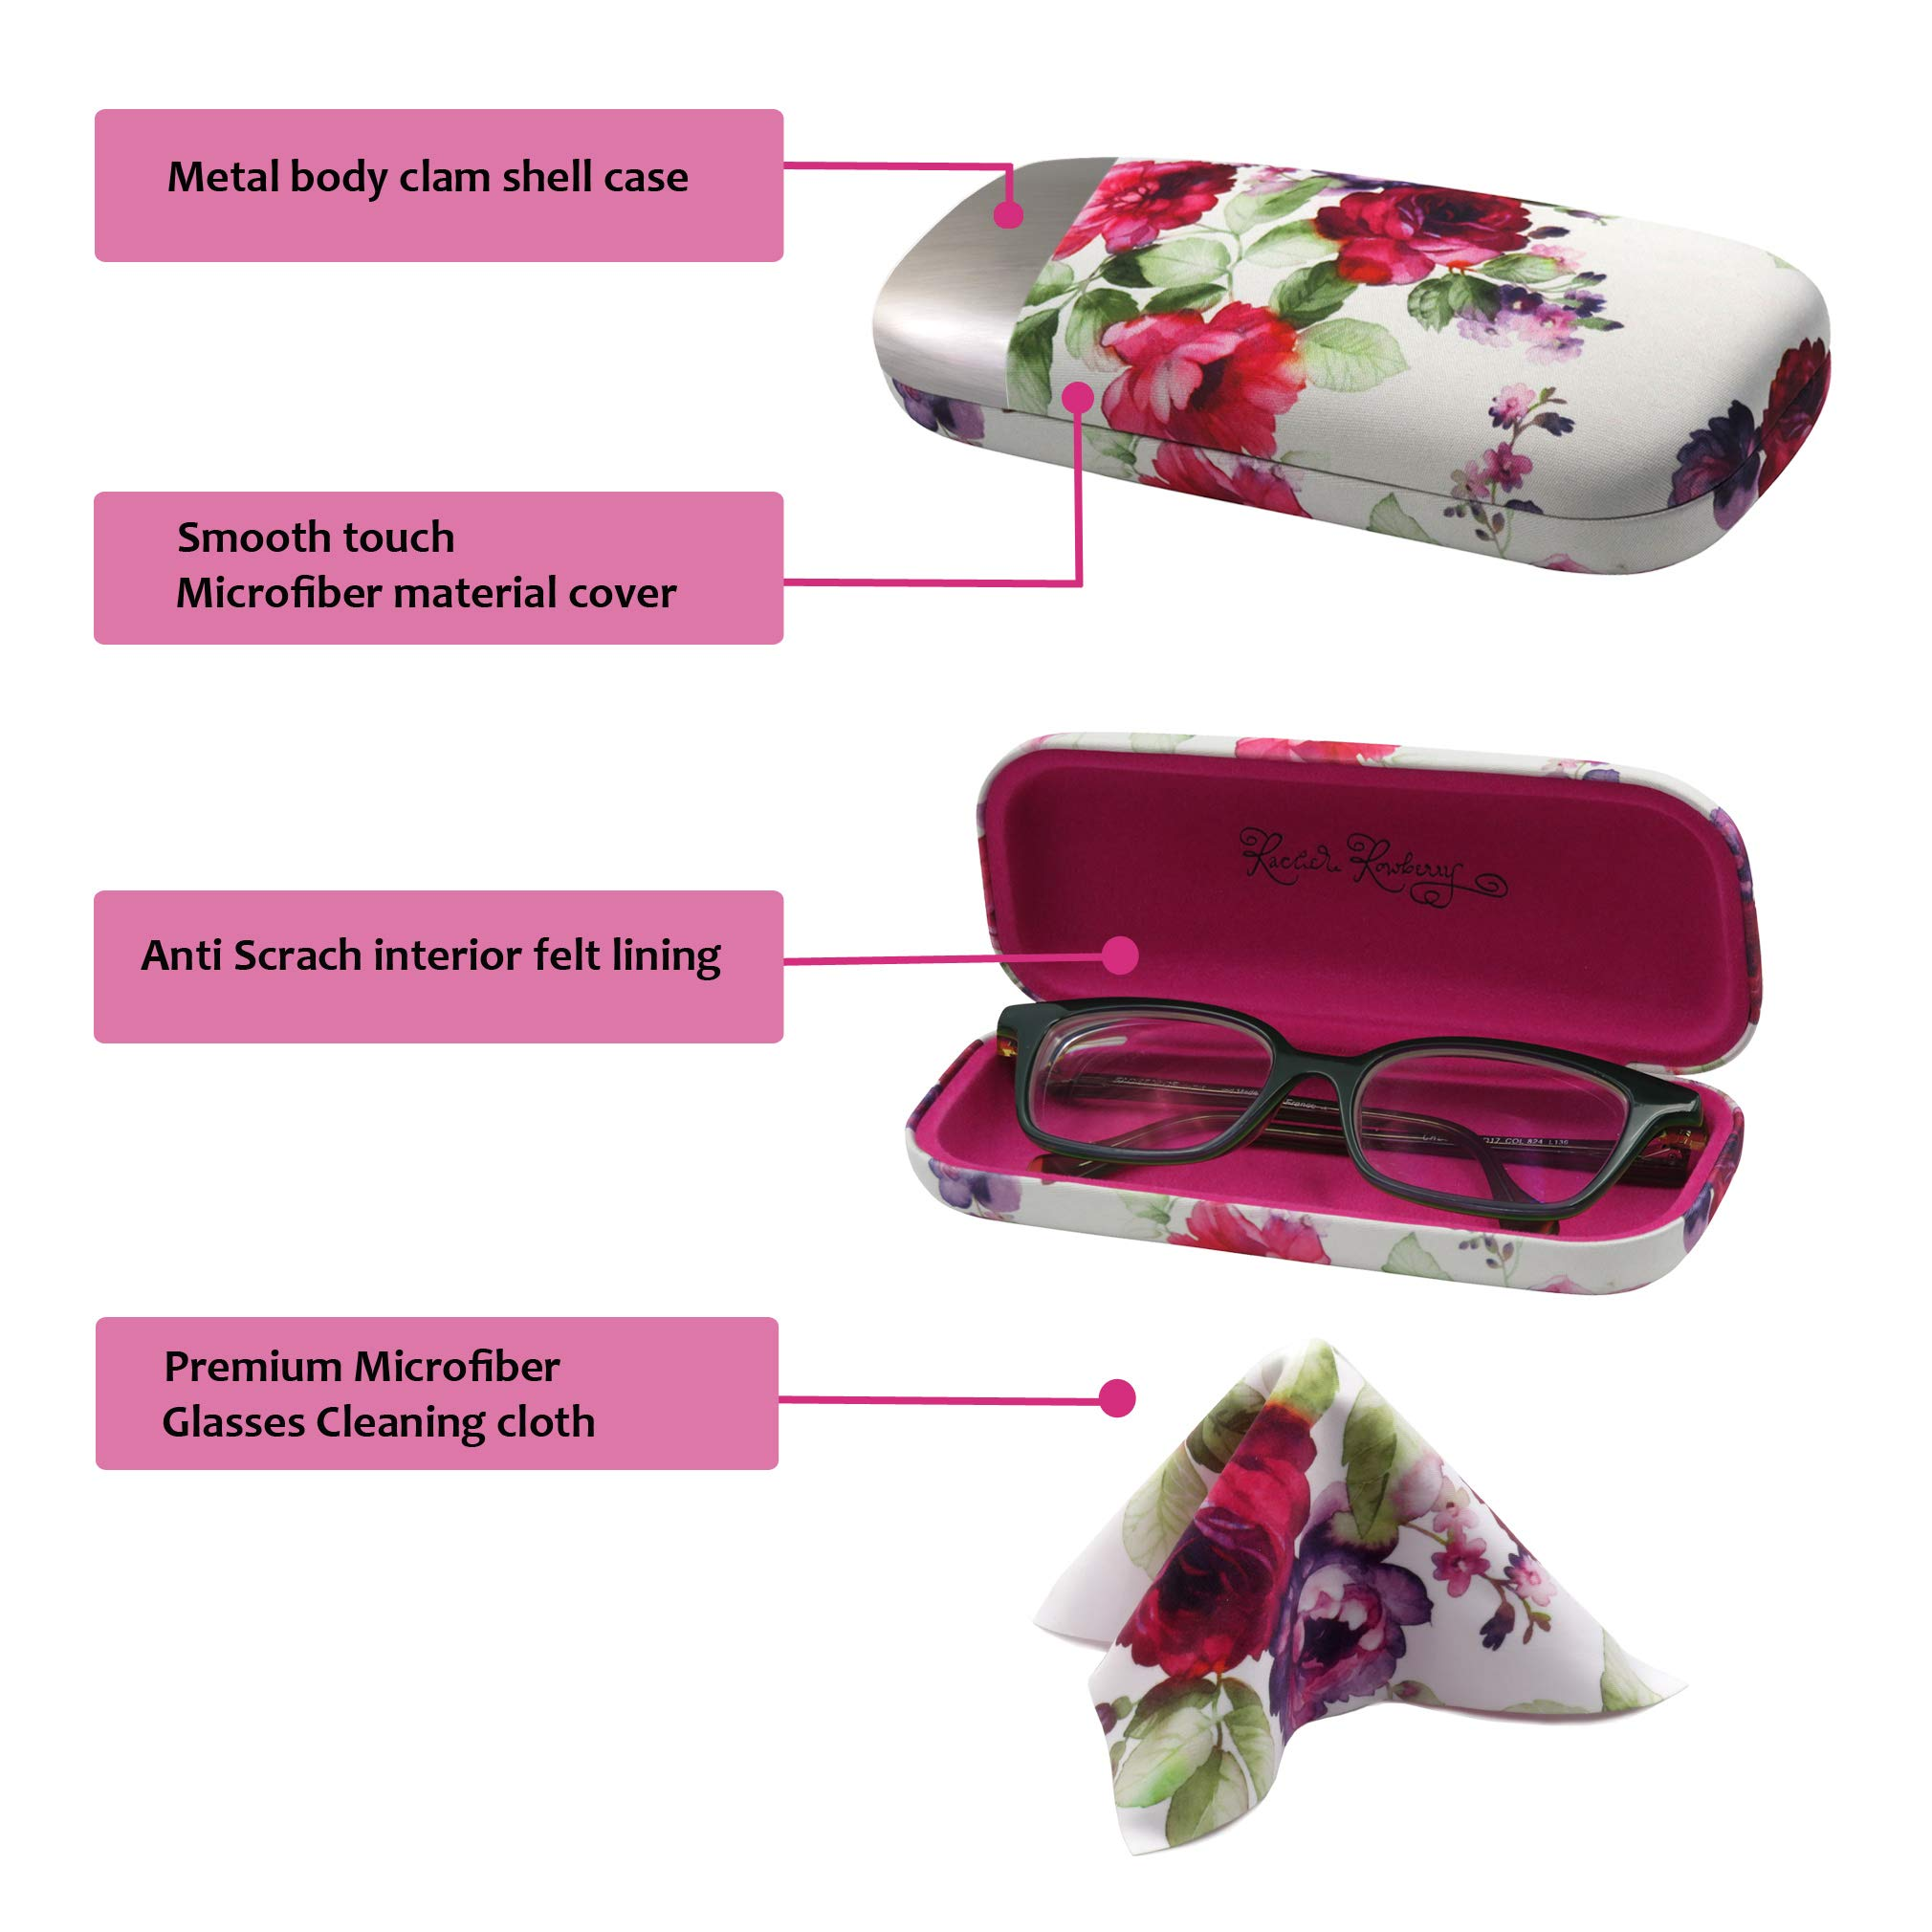 Floral Hard Shell Eyeglass Case for women Medium Sunglasses case with Cleaning Cloth by Rachel Rowberry (AS126 Cranberry Rose) by MyEyeglassCase (Image #2)